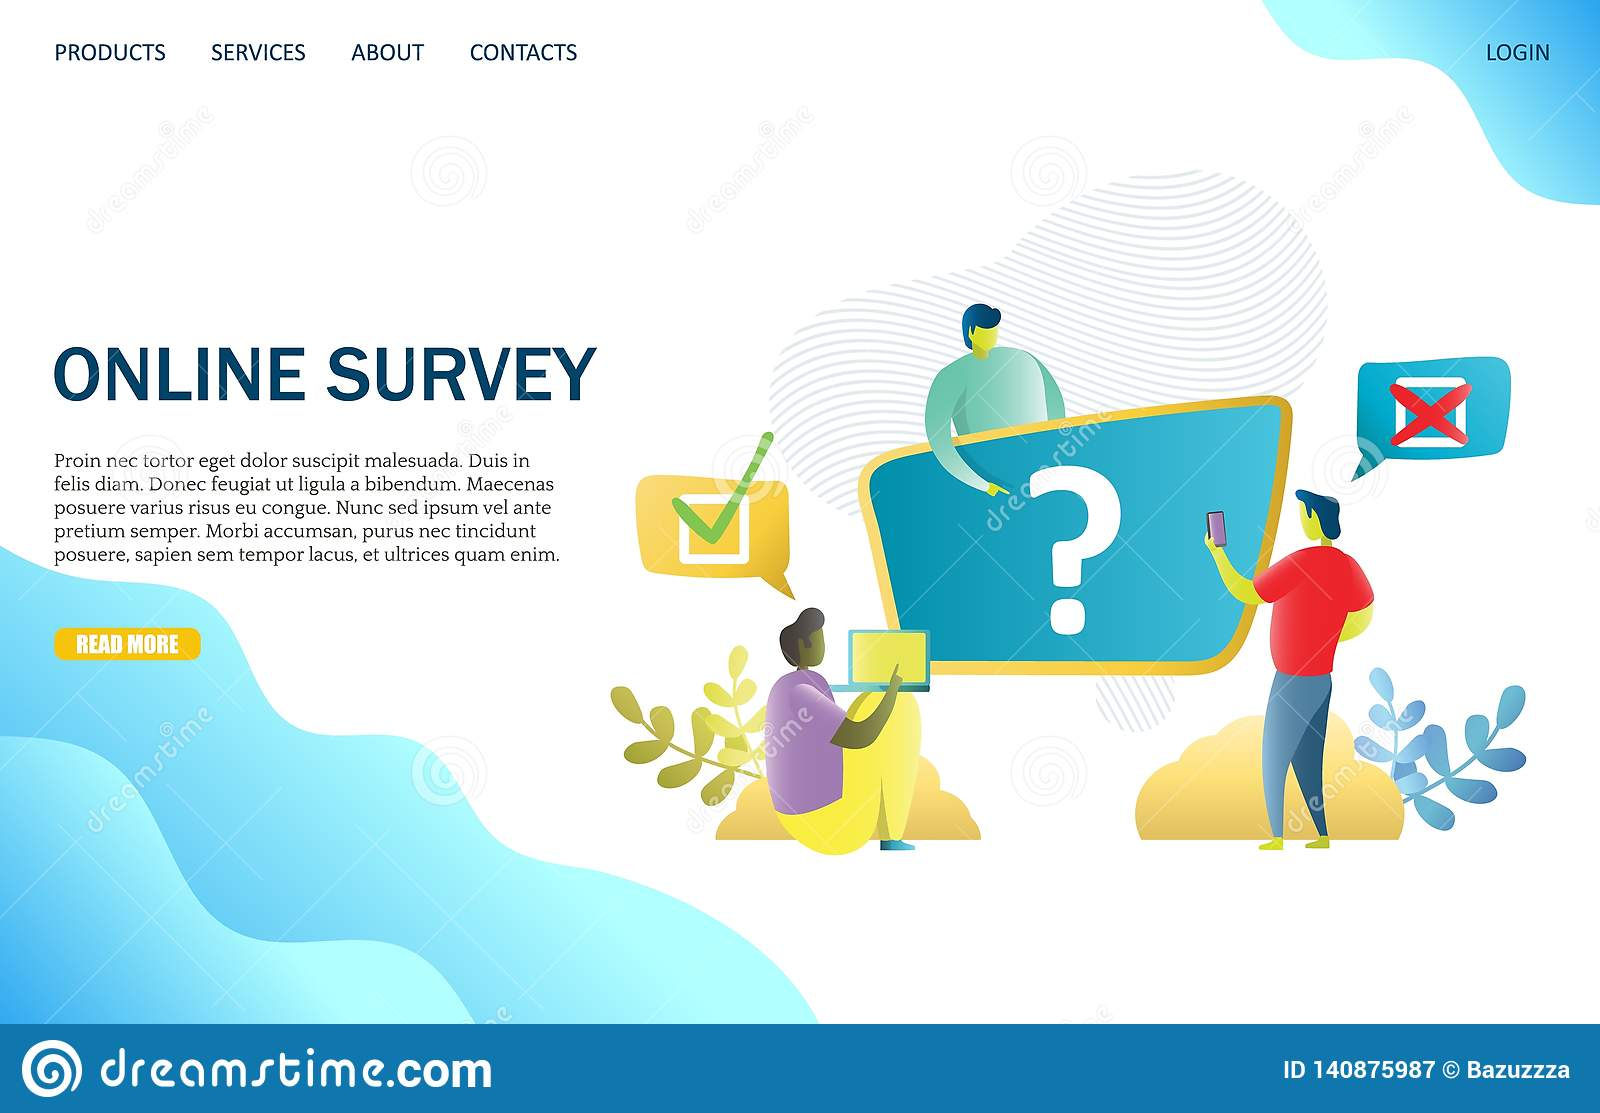 Online Survey Vector Website Landing Page Design Template